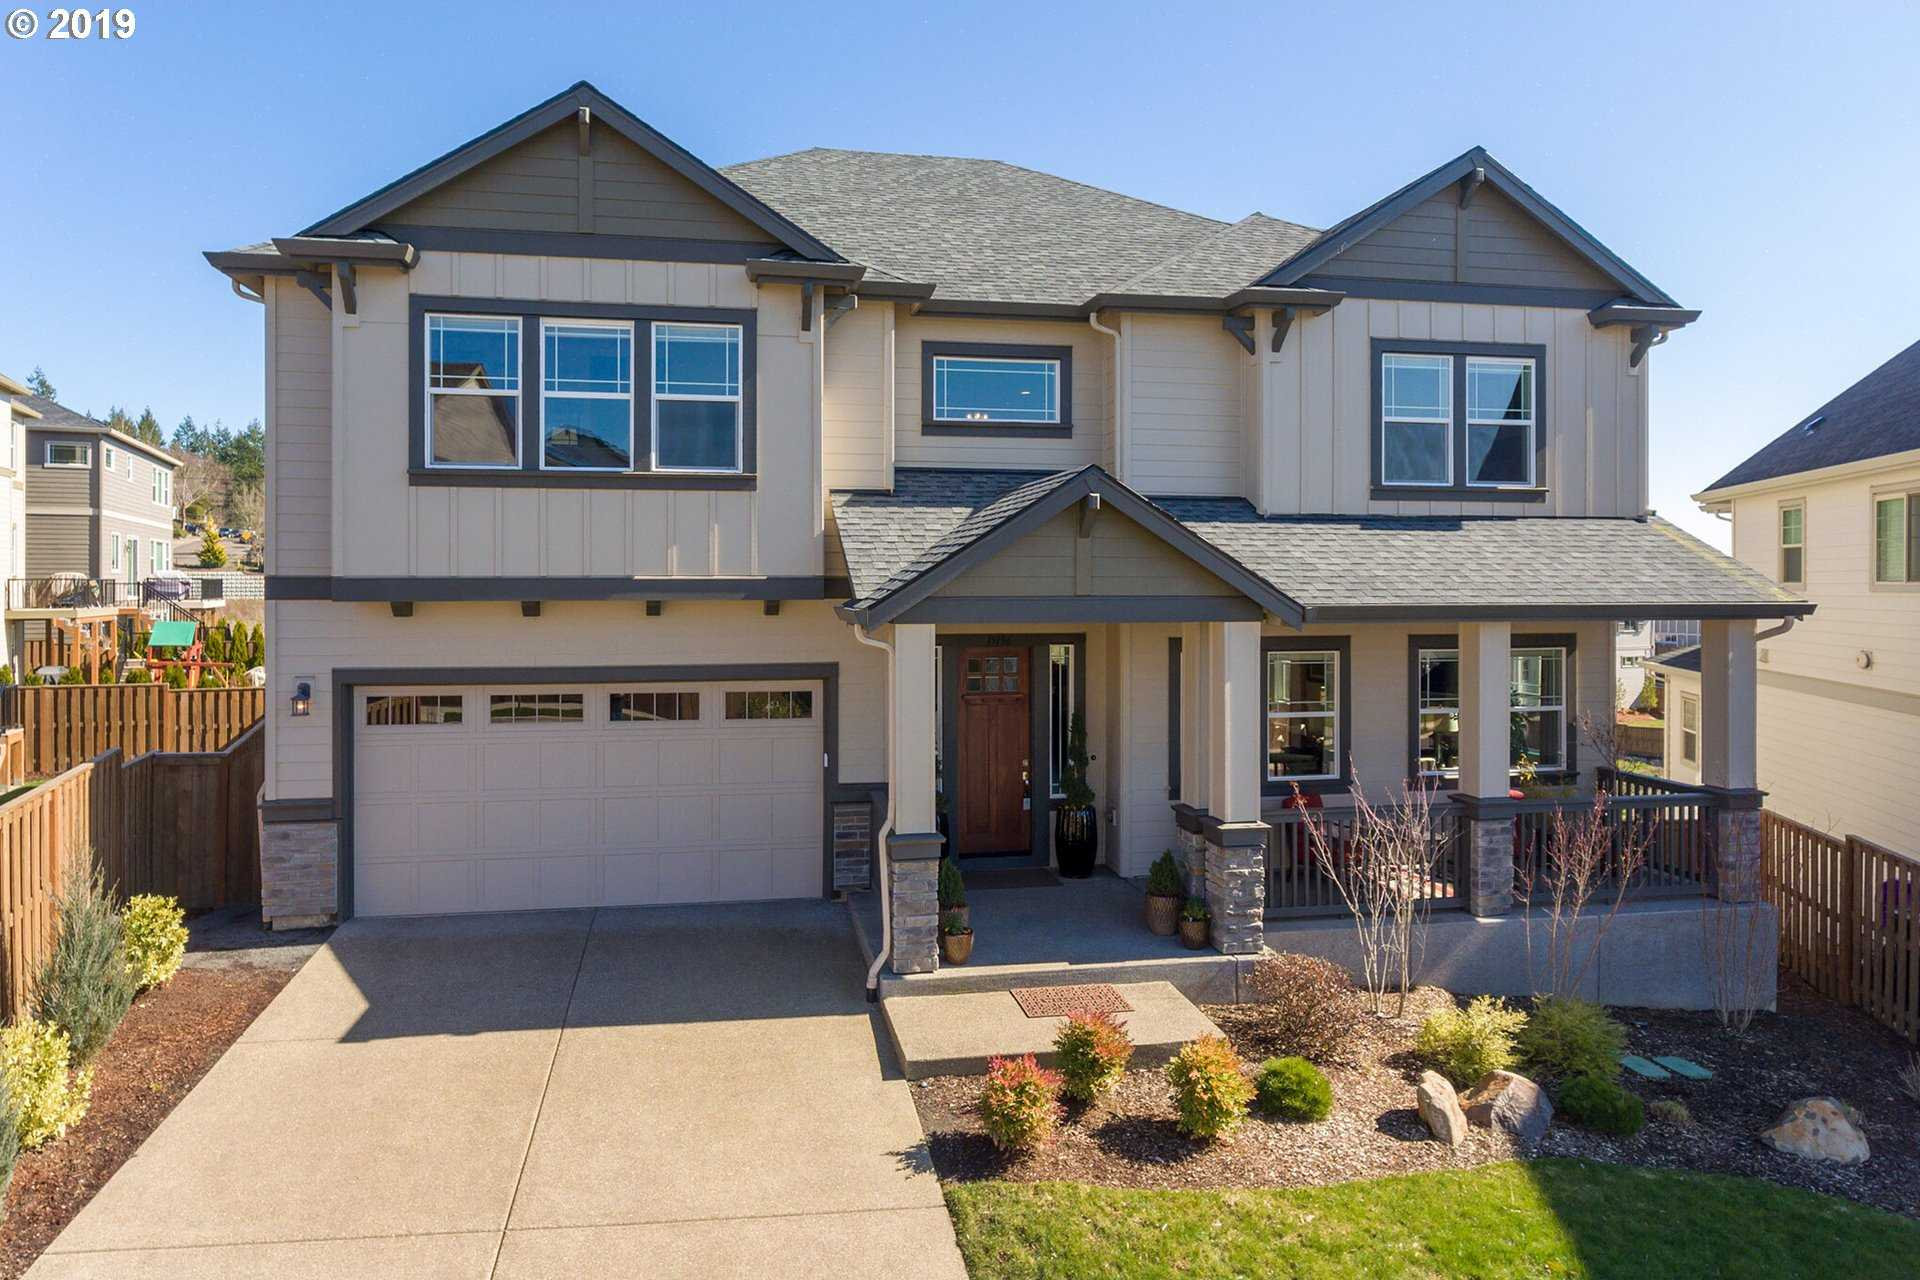 $889,900 - 4Br/4Ba -  for Sale in Tigard